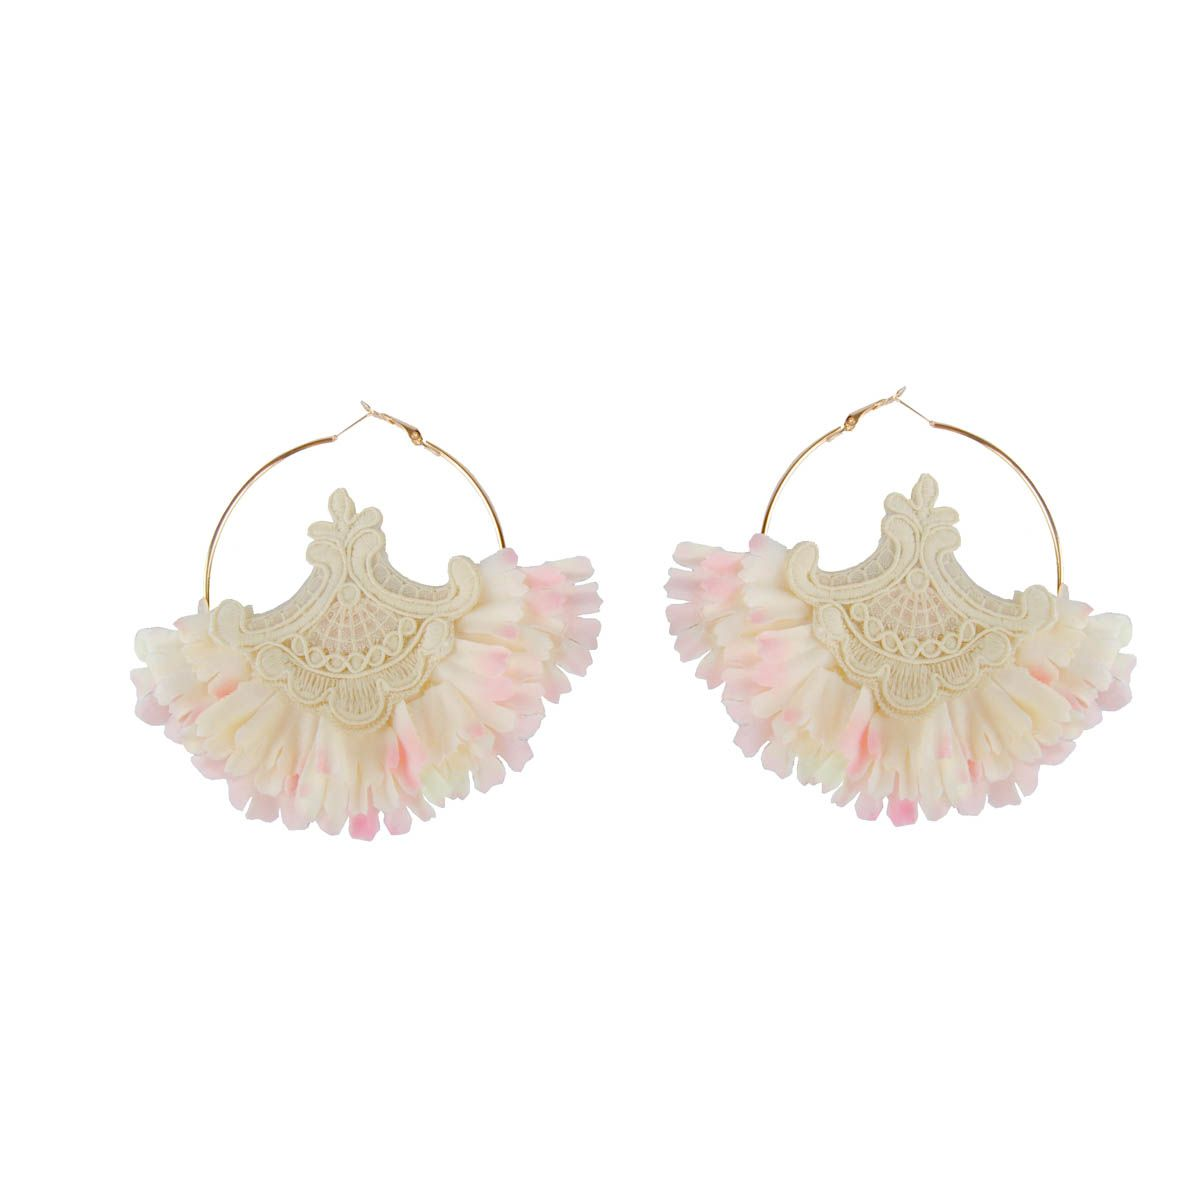 Maria Graor Hand Made Earring in Gold